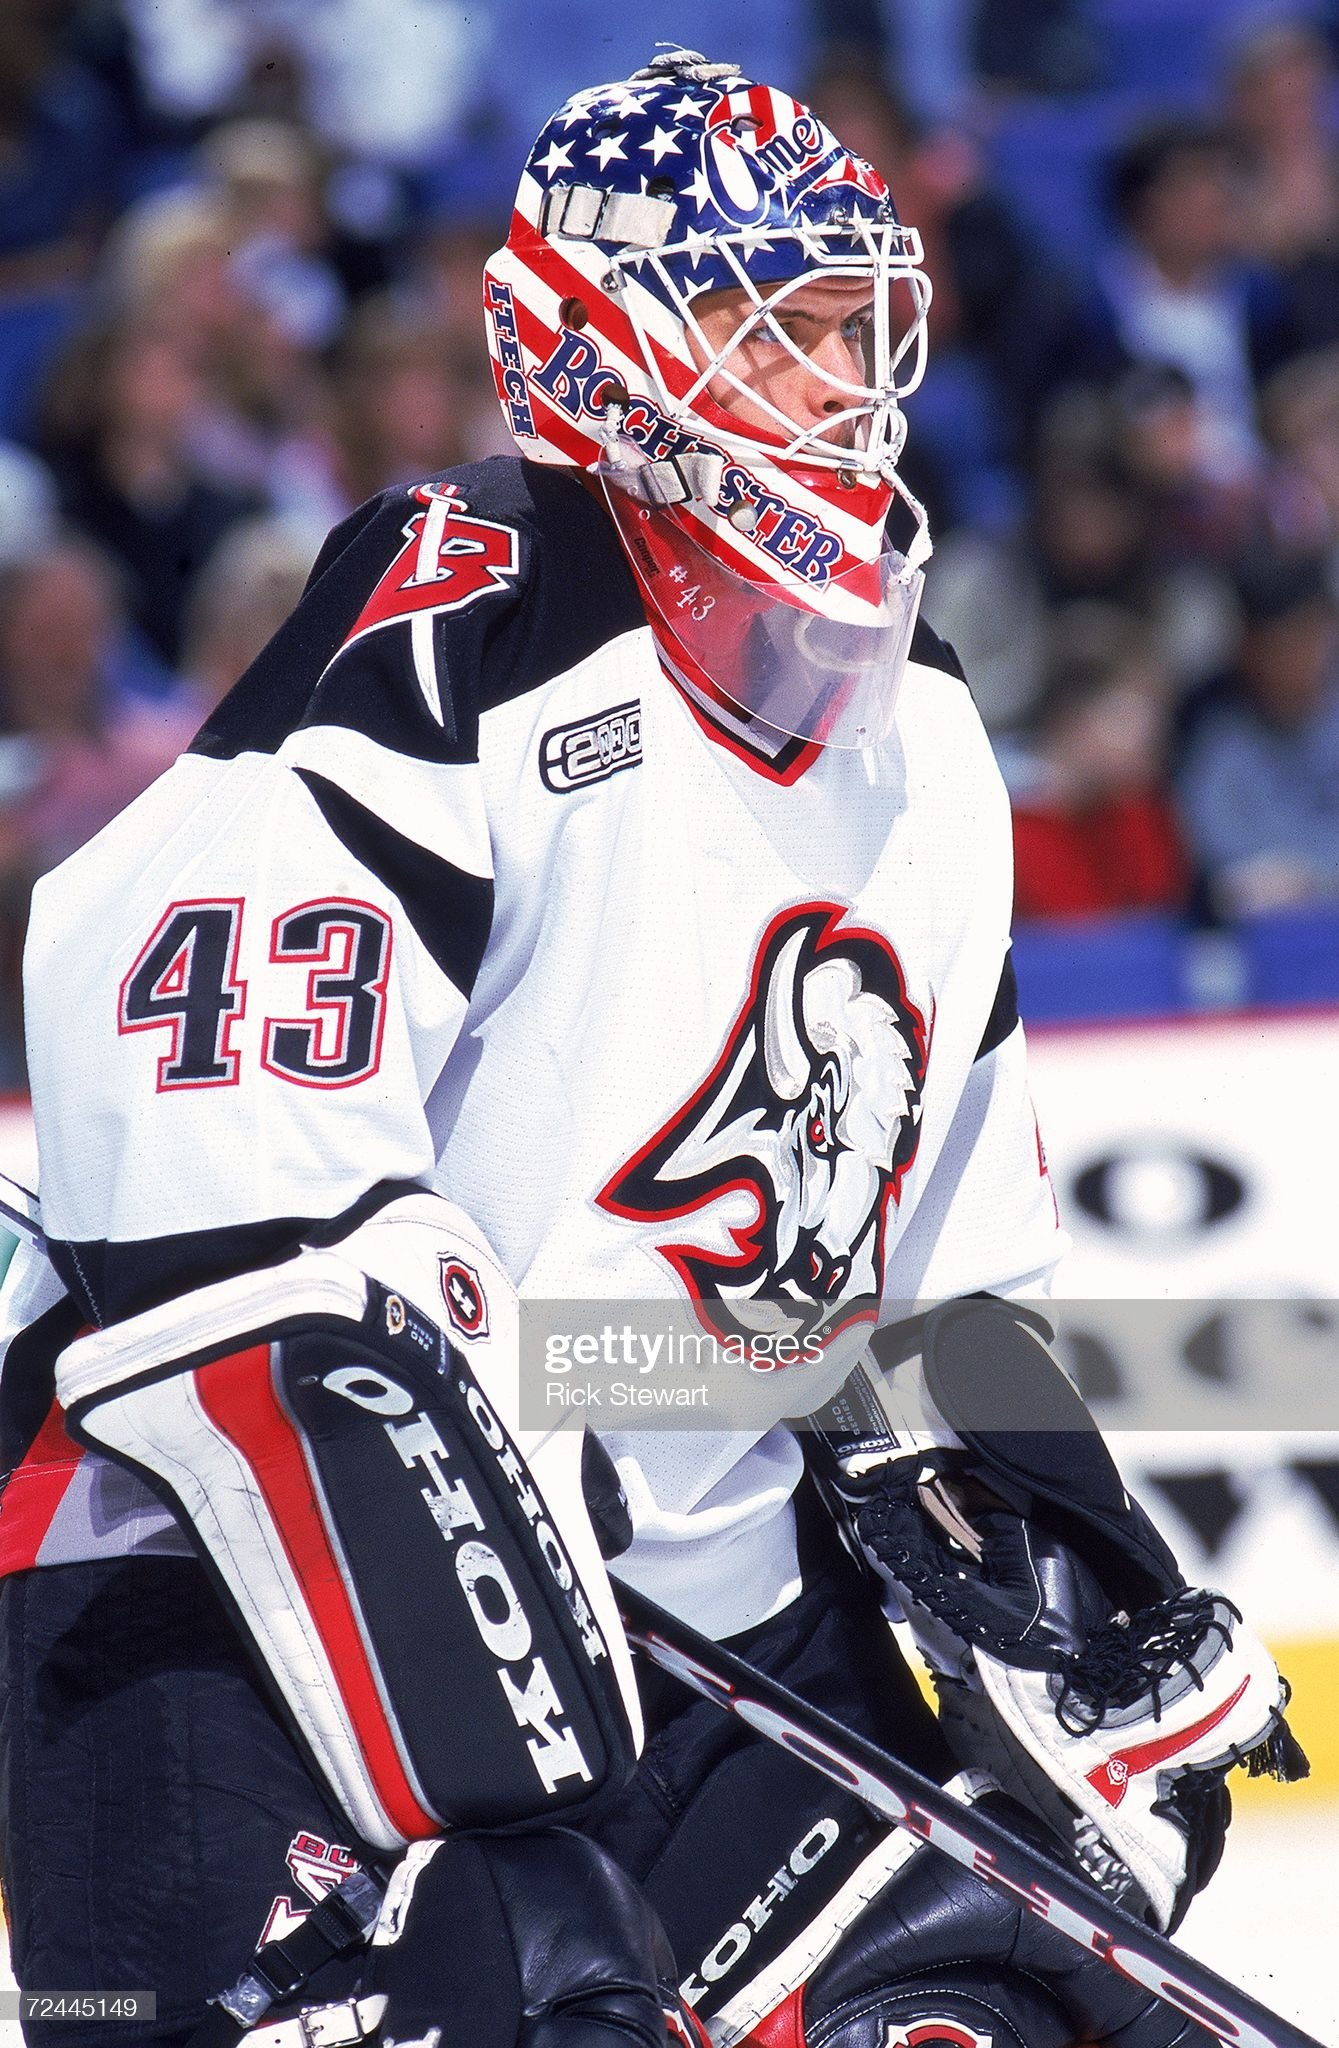 nov-1999-goalie-martin-biron-of-the-buff